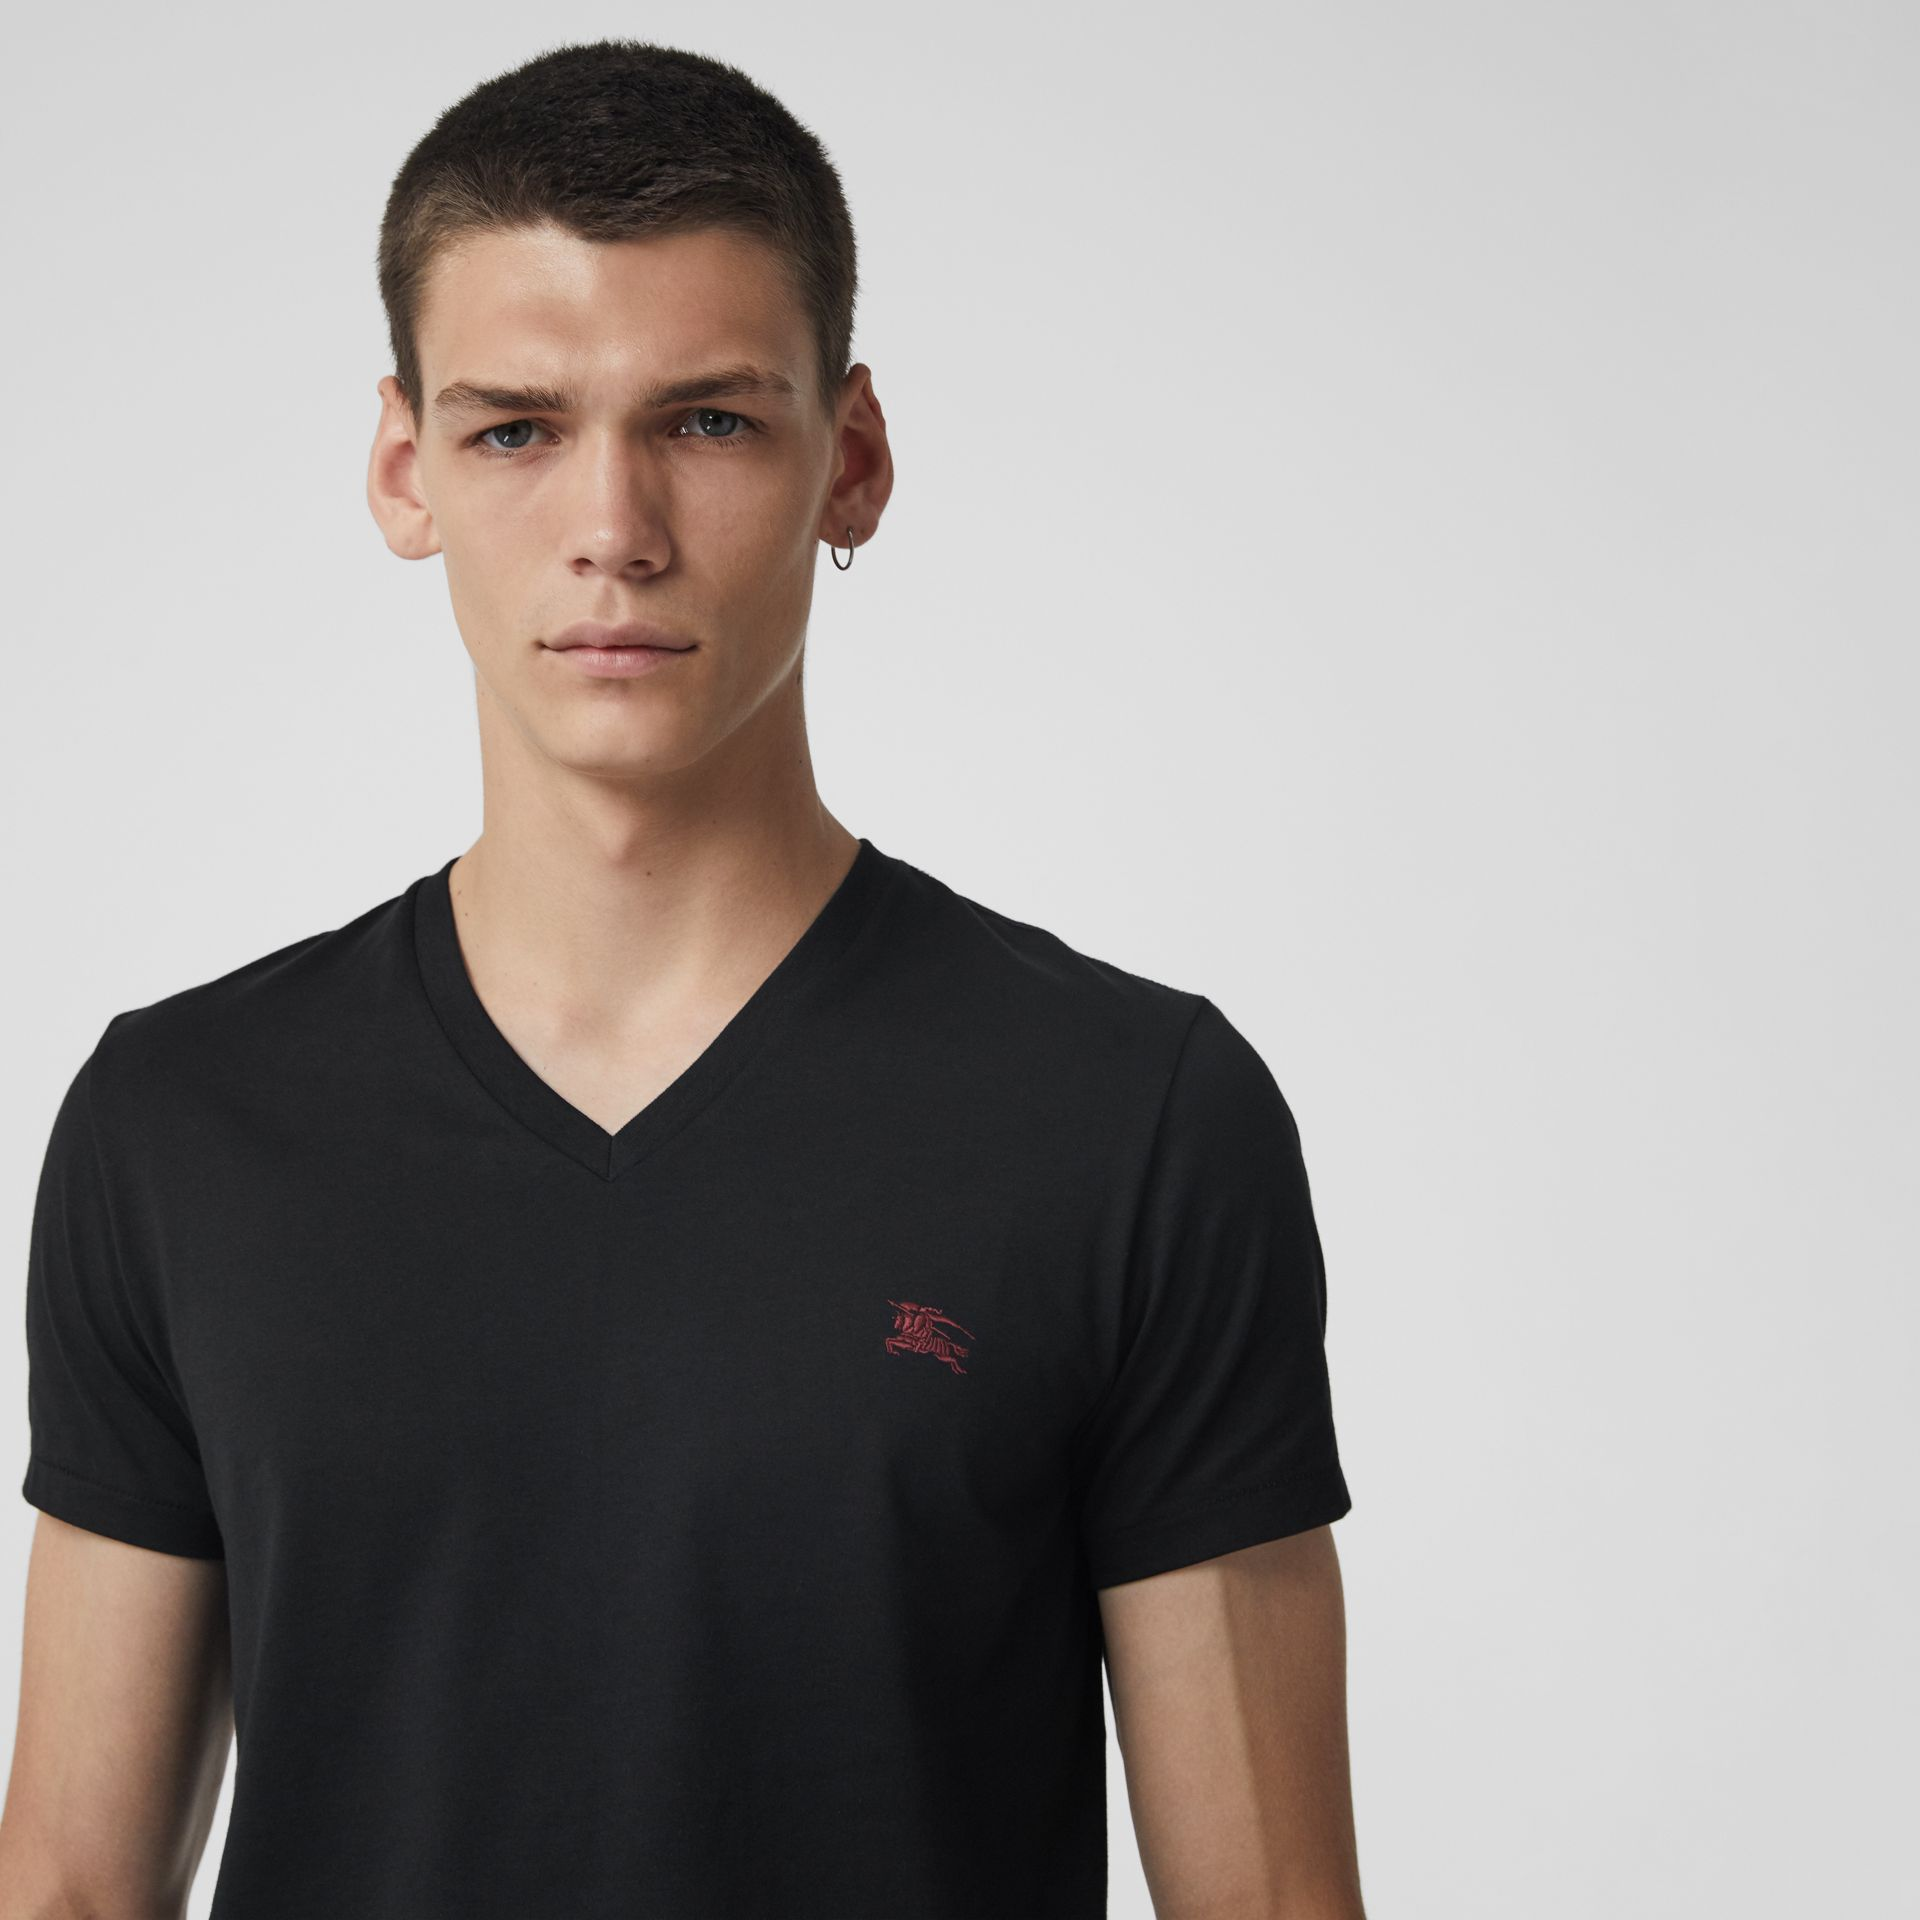 Cotton Jersey V-neck T-shirt in Black - Men | Burberry Canada - gallery image 1